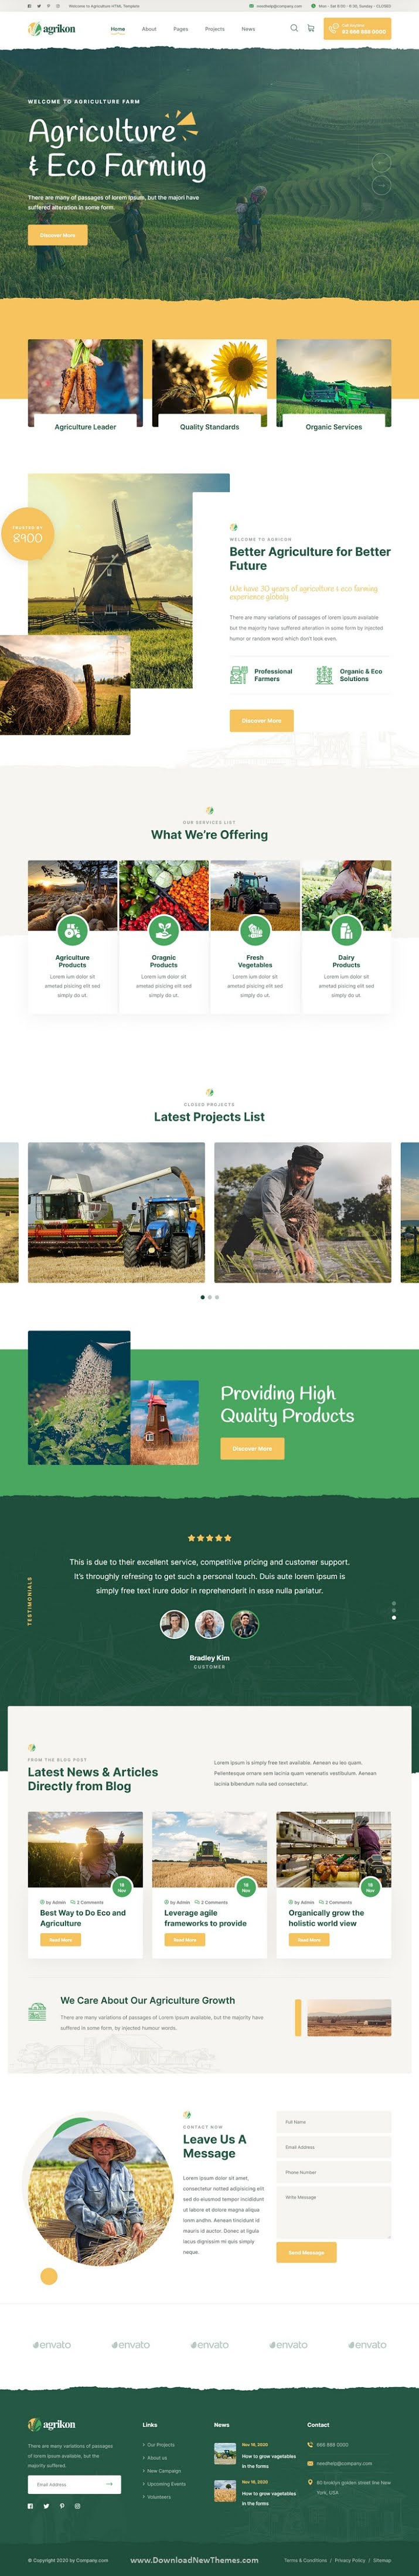 HTML Template For Agriculture Farm and Farmers